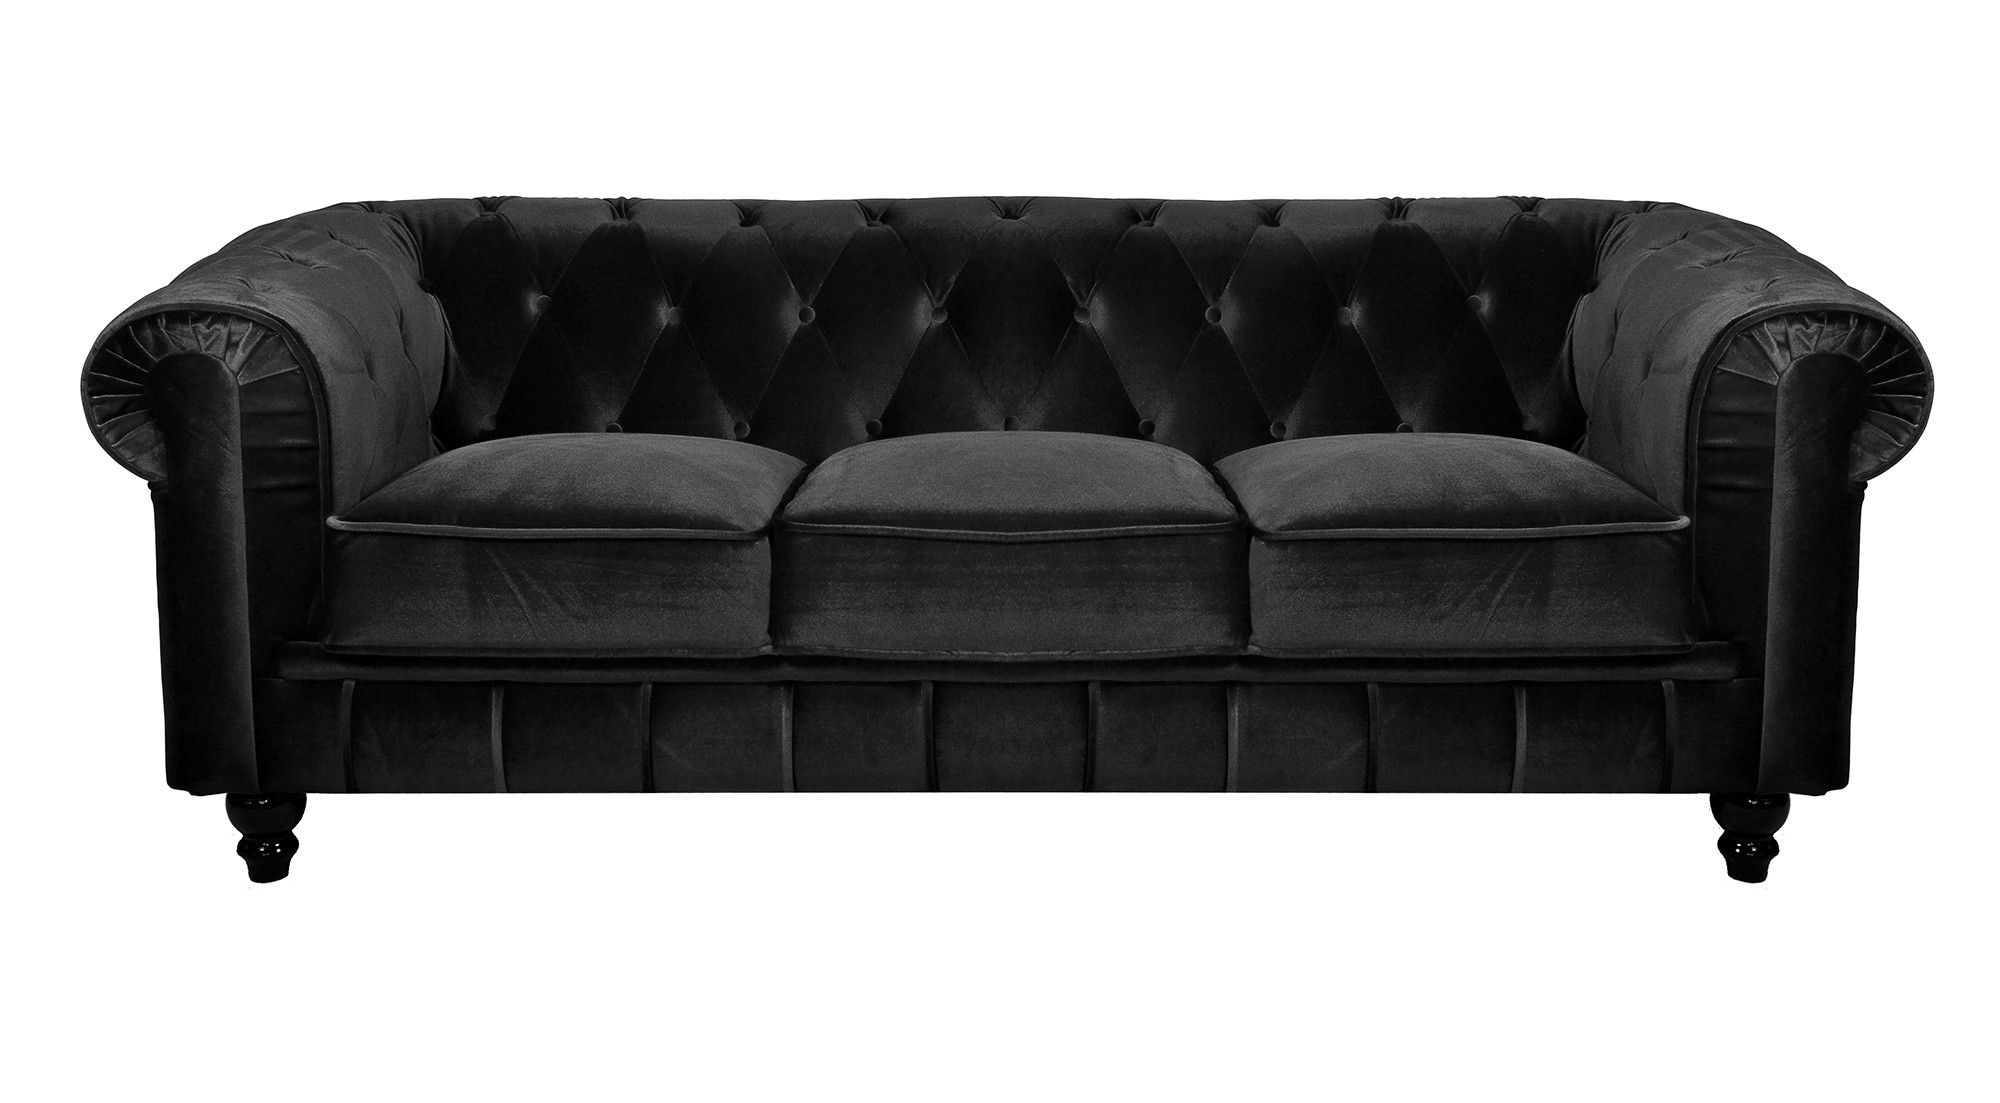 Canape chesterfield convertible meilleures images d for Canape convertble